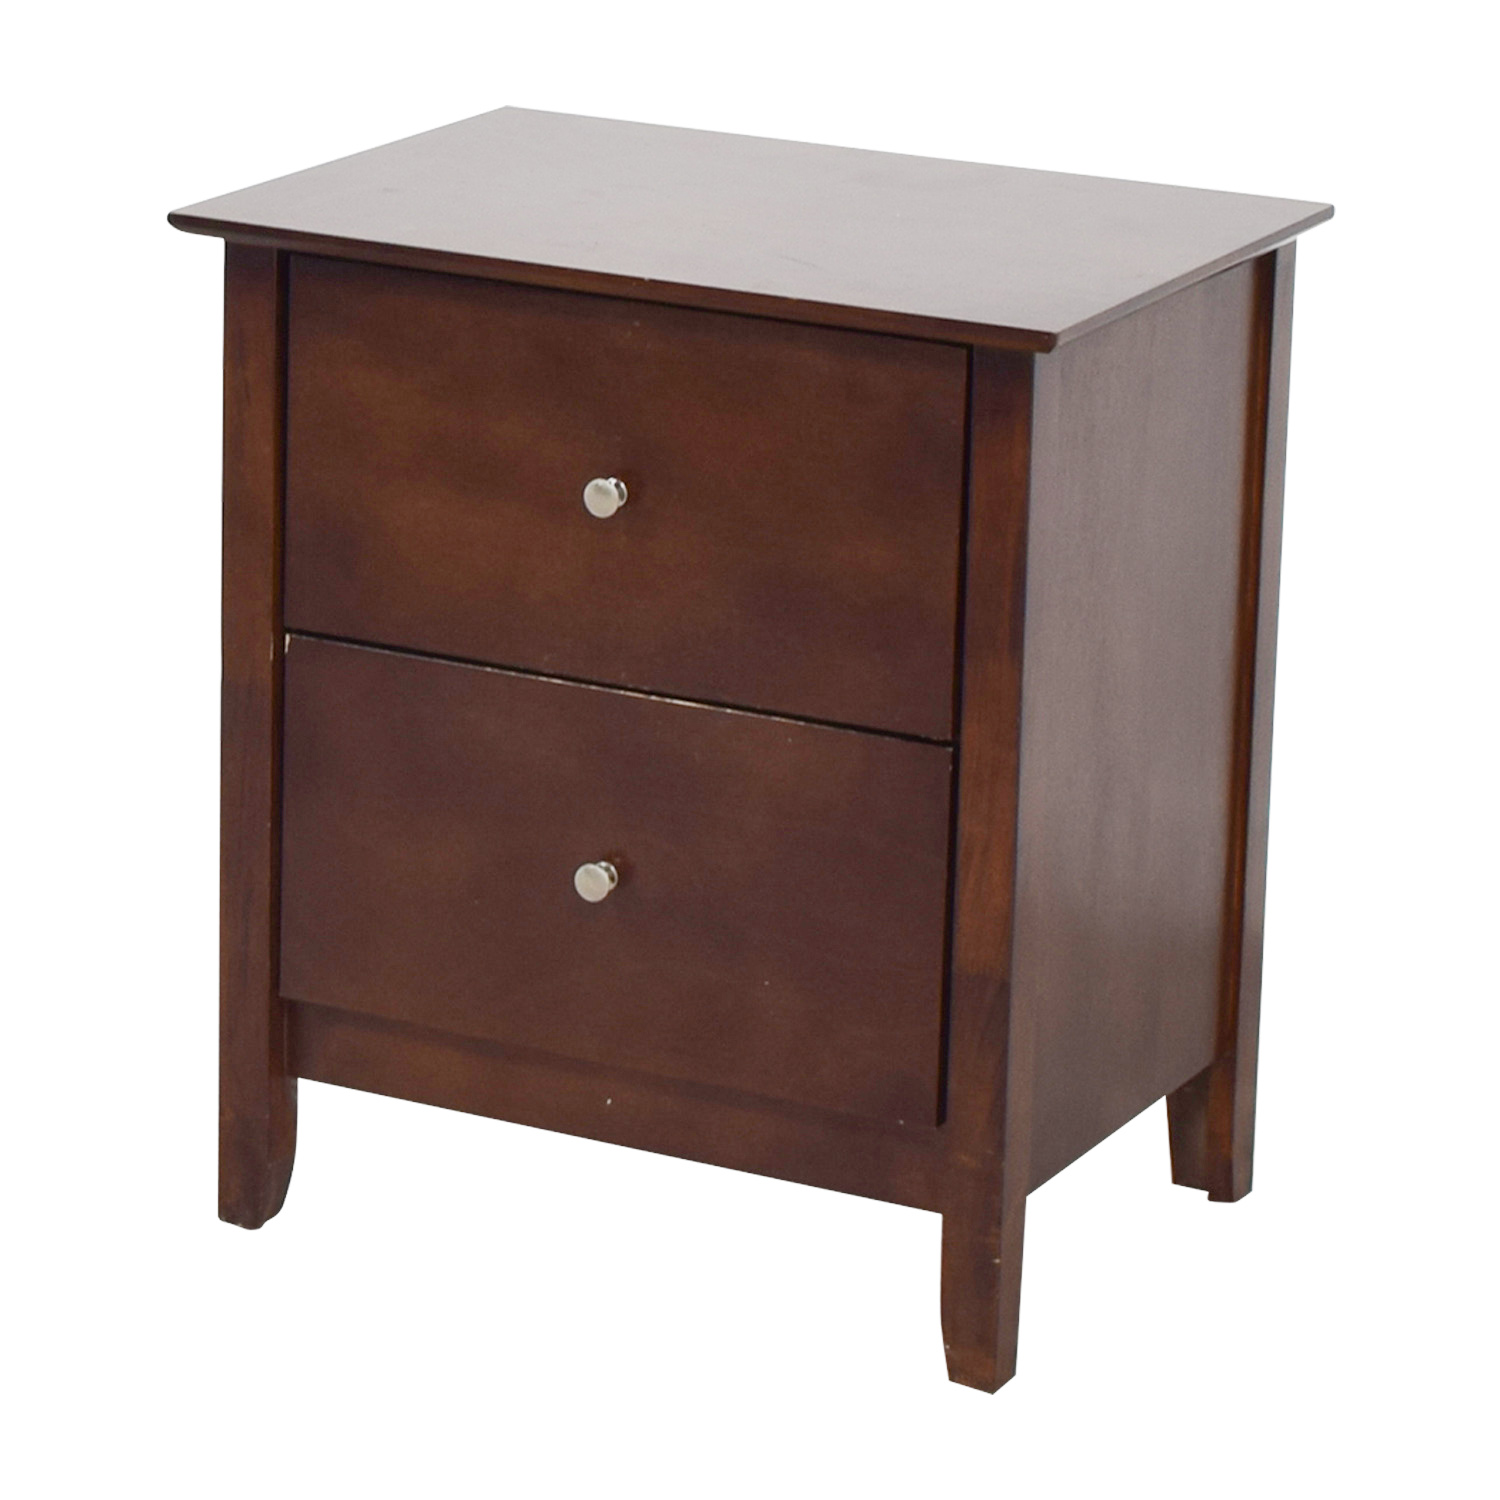 Bobs Discount Furniture Bobs Furniture Two-Drawer Nightstand End Tables